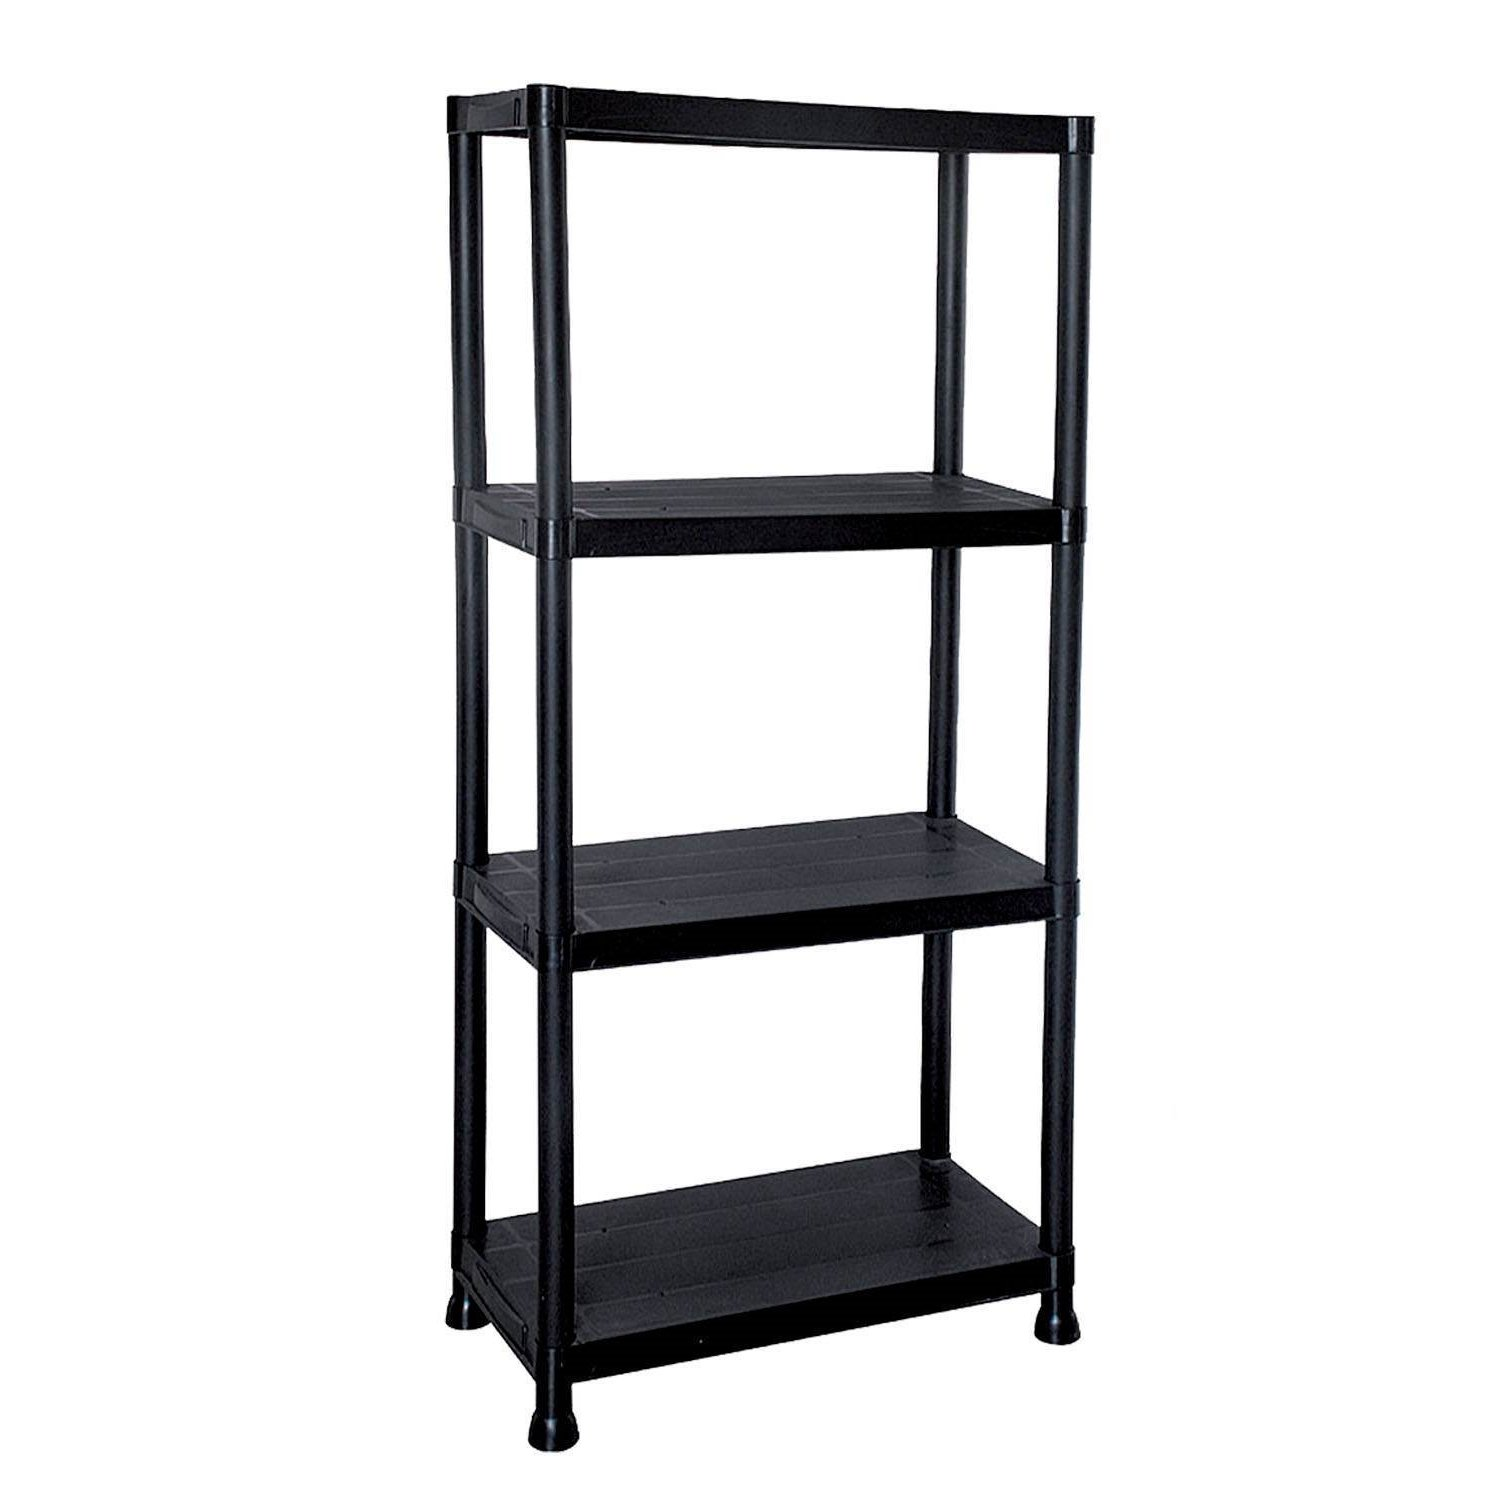 Greenfingers 4 Tier Shelving Unit